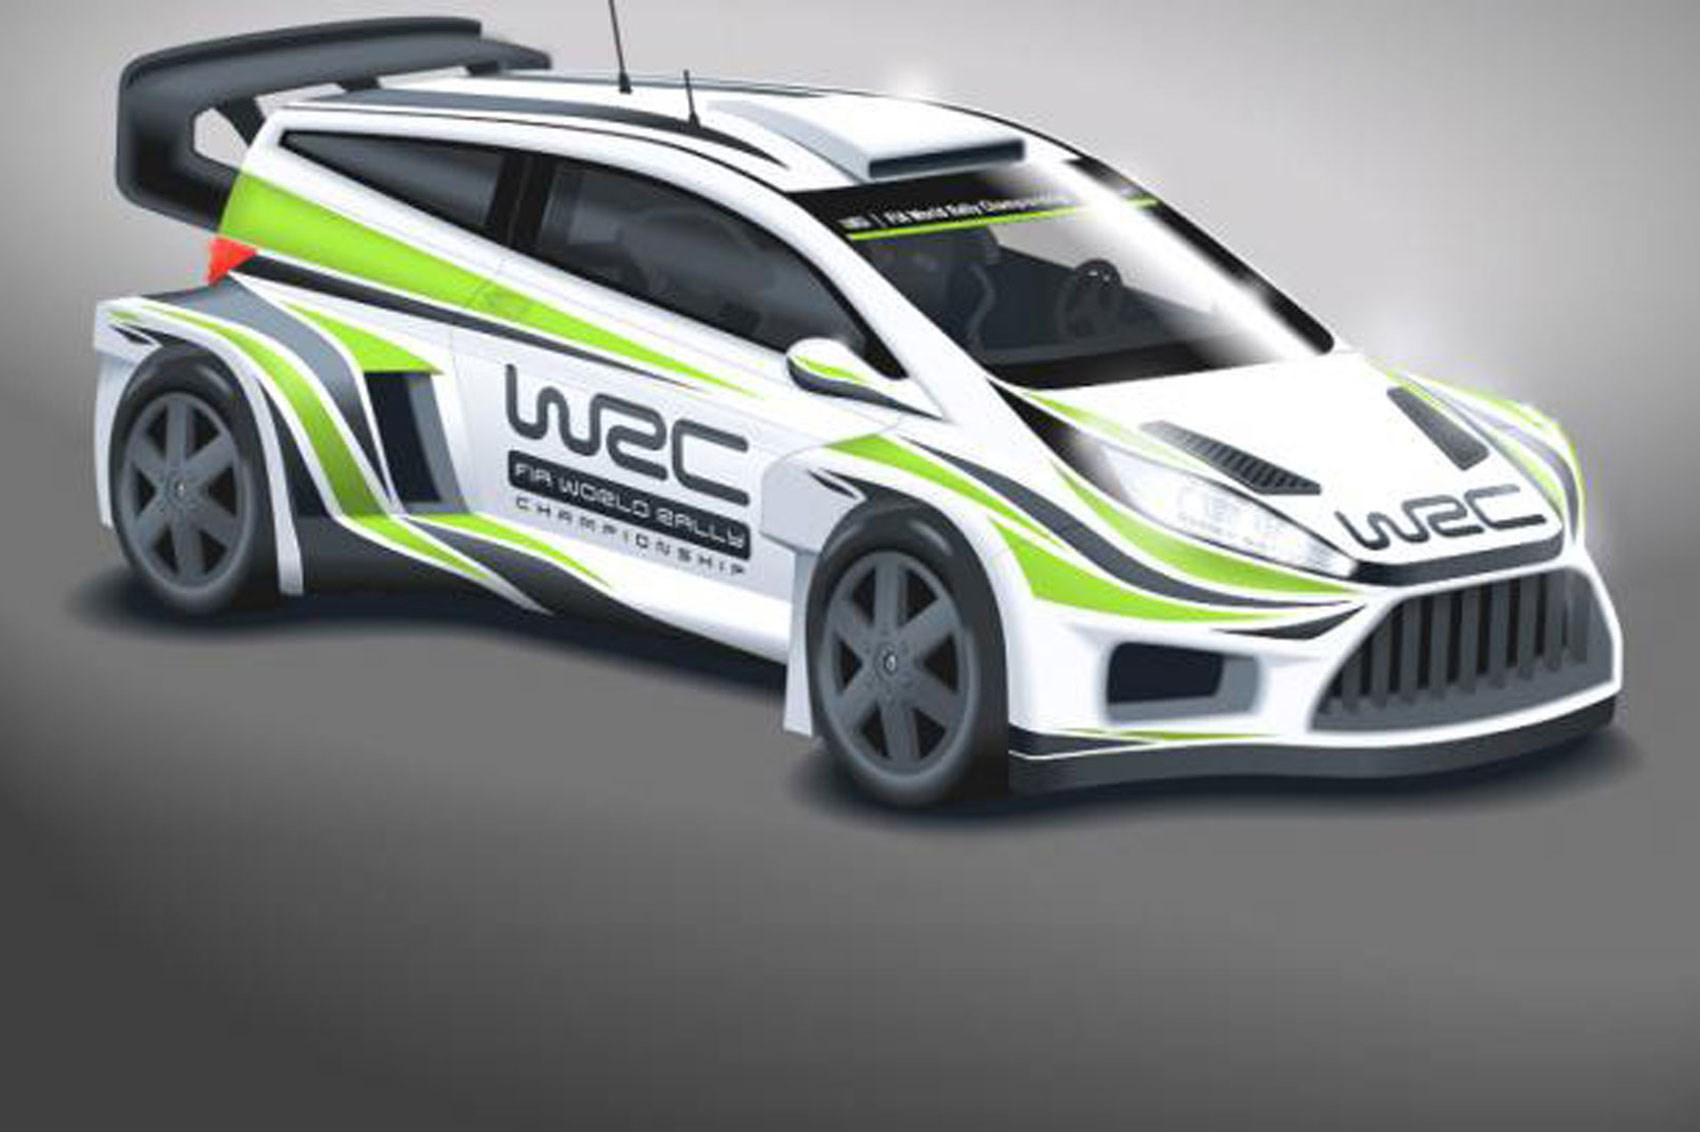 Ultrablogus  Scenic Wild New Look For Wrc Cars In  By Car Magazine With Hot Wrc Cars Will Get Wider Bodies Bigger Wings And More Power For  With Lovely  Infiniti Fx Interior Also Kia Optima  Interior In Addition  Dodge Avenger Interior And  Dodge Avenger Interior As Well As  Grand Cherokee Interior Additionally  Corolla Interior From Carmagazinecouk With Ultrablogus  Hot Wild New Look For Wrc Cars In  By Car Magazine With Lovely Wrc Cars Will Get Wider Bodies Bigger Wings And More Power For  And Scenic  Infiniti Fx Interior Also Kia Optima  Interior In Addition  Dodge Avenger Interior From Carmagazinecouk